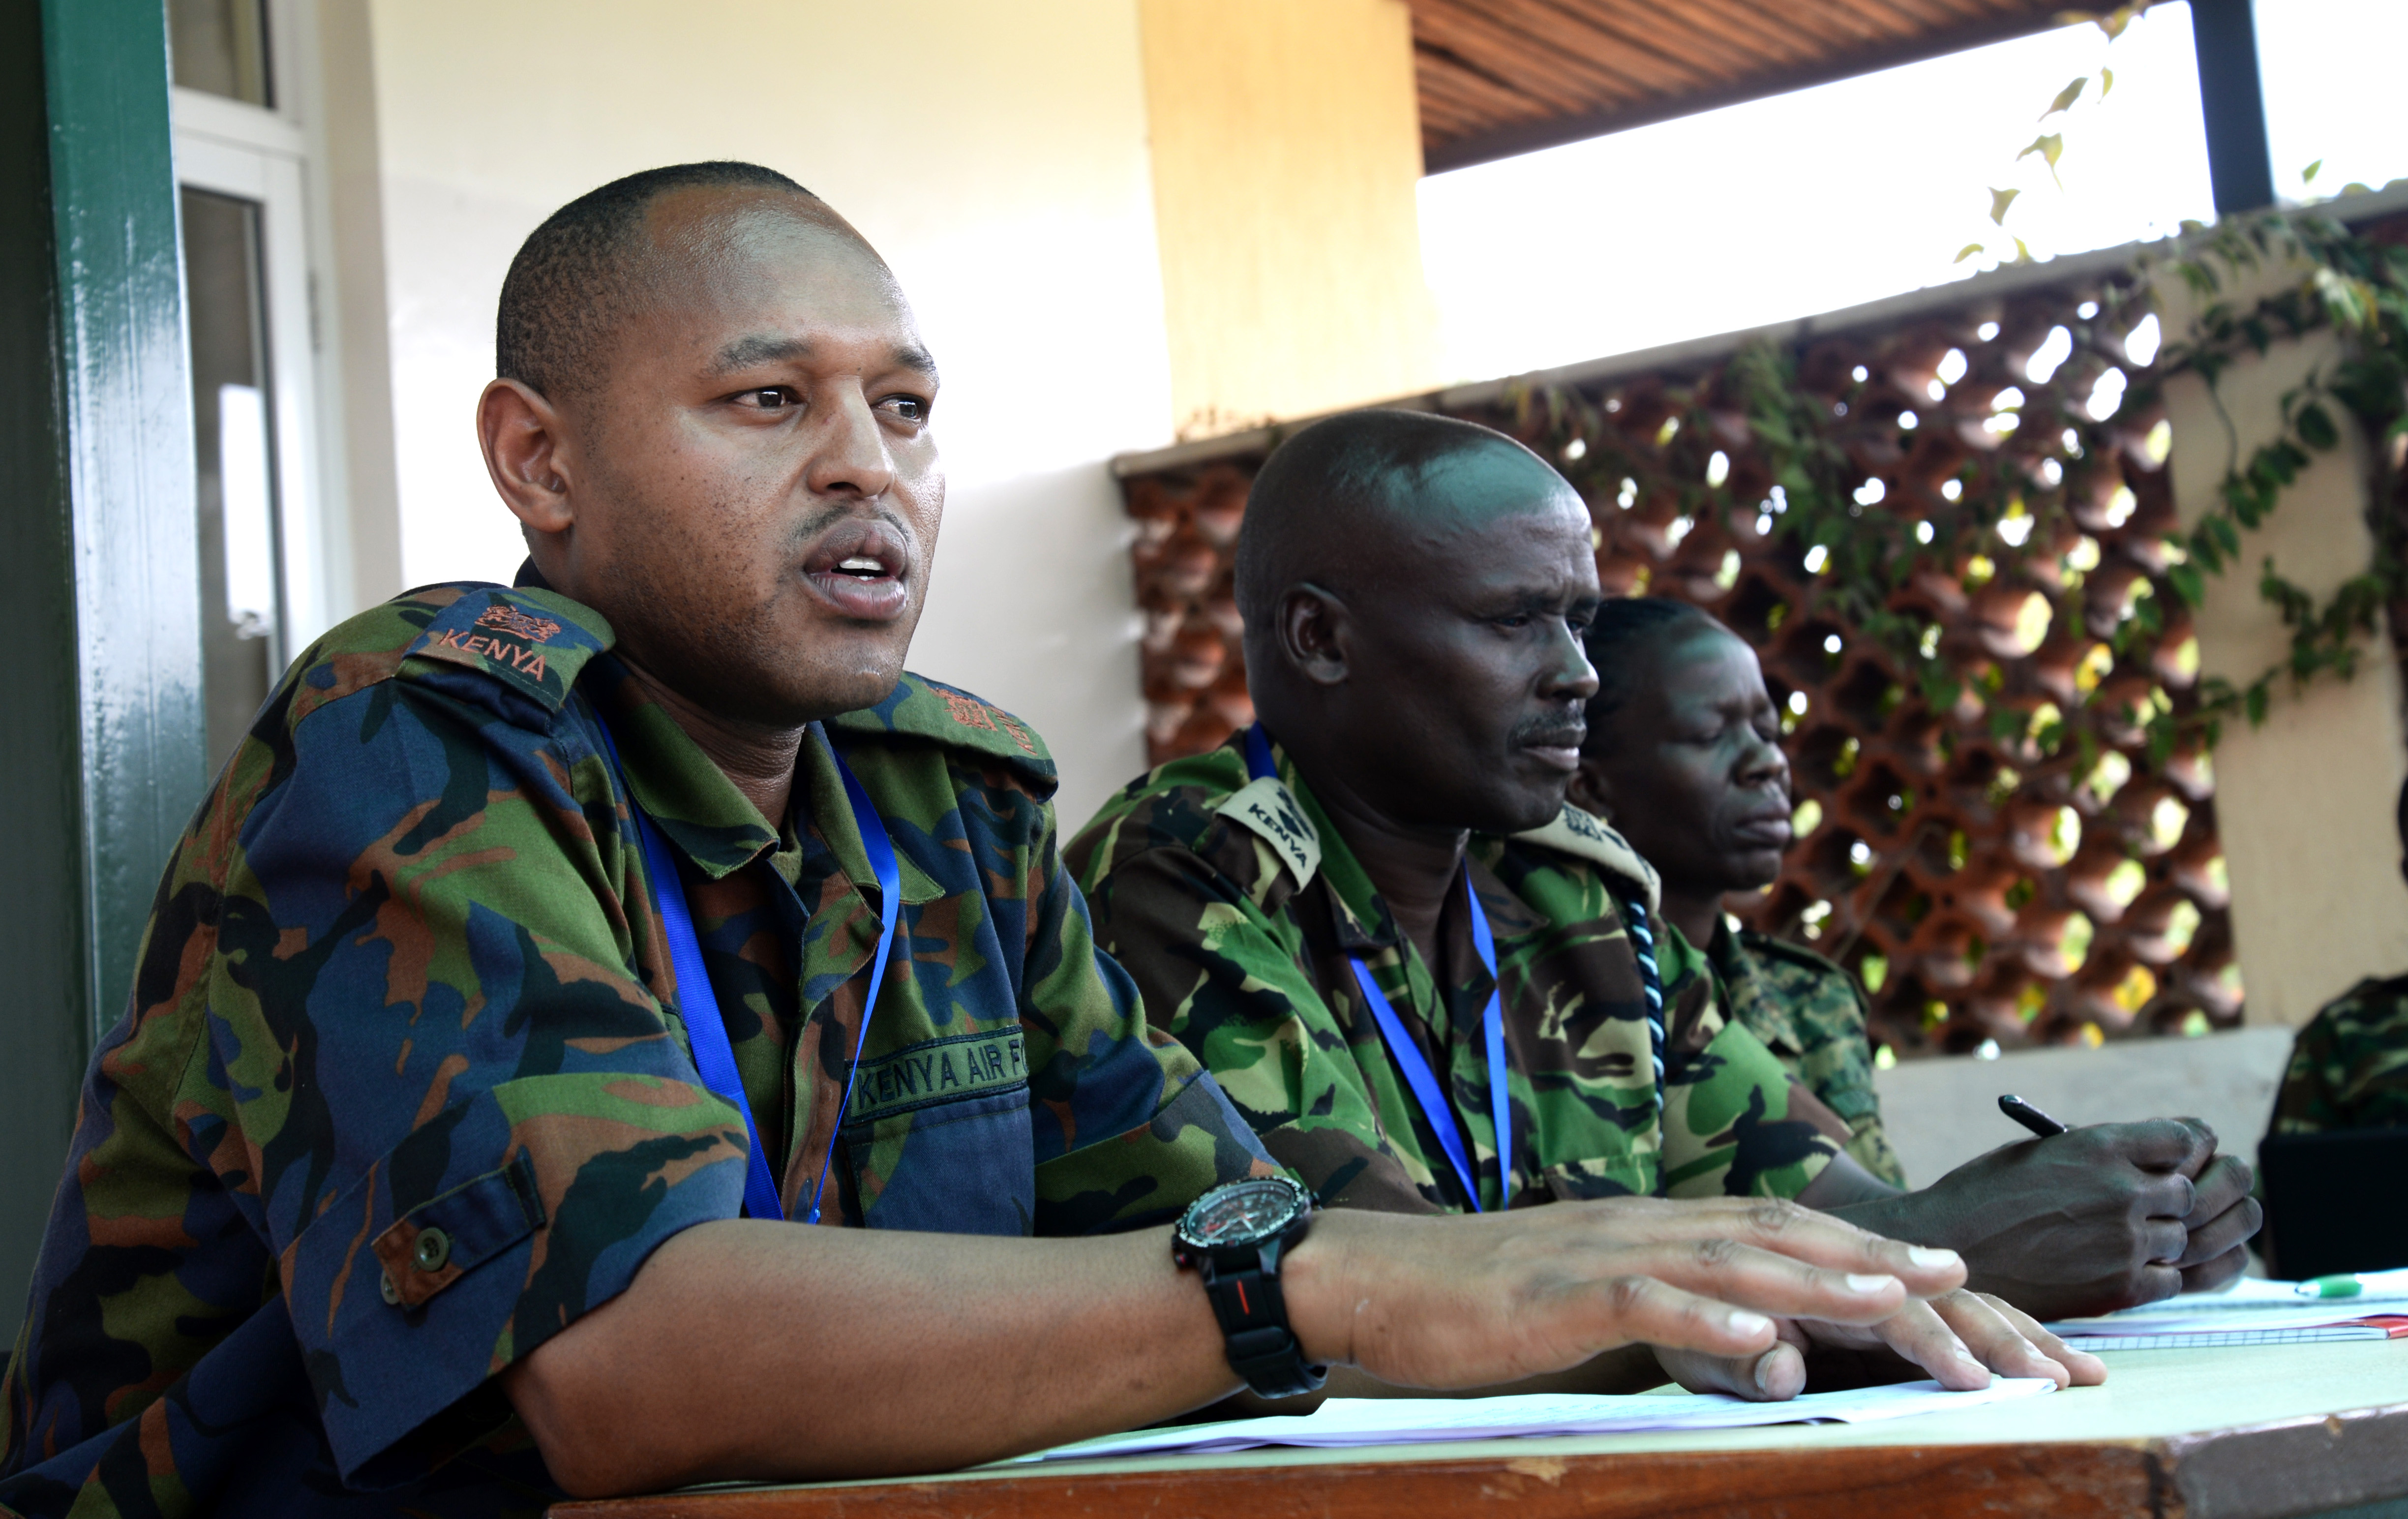 Officers from Kenya, Burundi and Uganda prepare for a simulated press conference March 3, 2016, during an exercise to complete an AMISOM staff officer course in Nairobi, Kenya. The practice press conference tested the public information officers' ability to prepare and present a press conference. (U.S. Air Force photo by Staff Sgt. Kate Thornton)